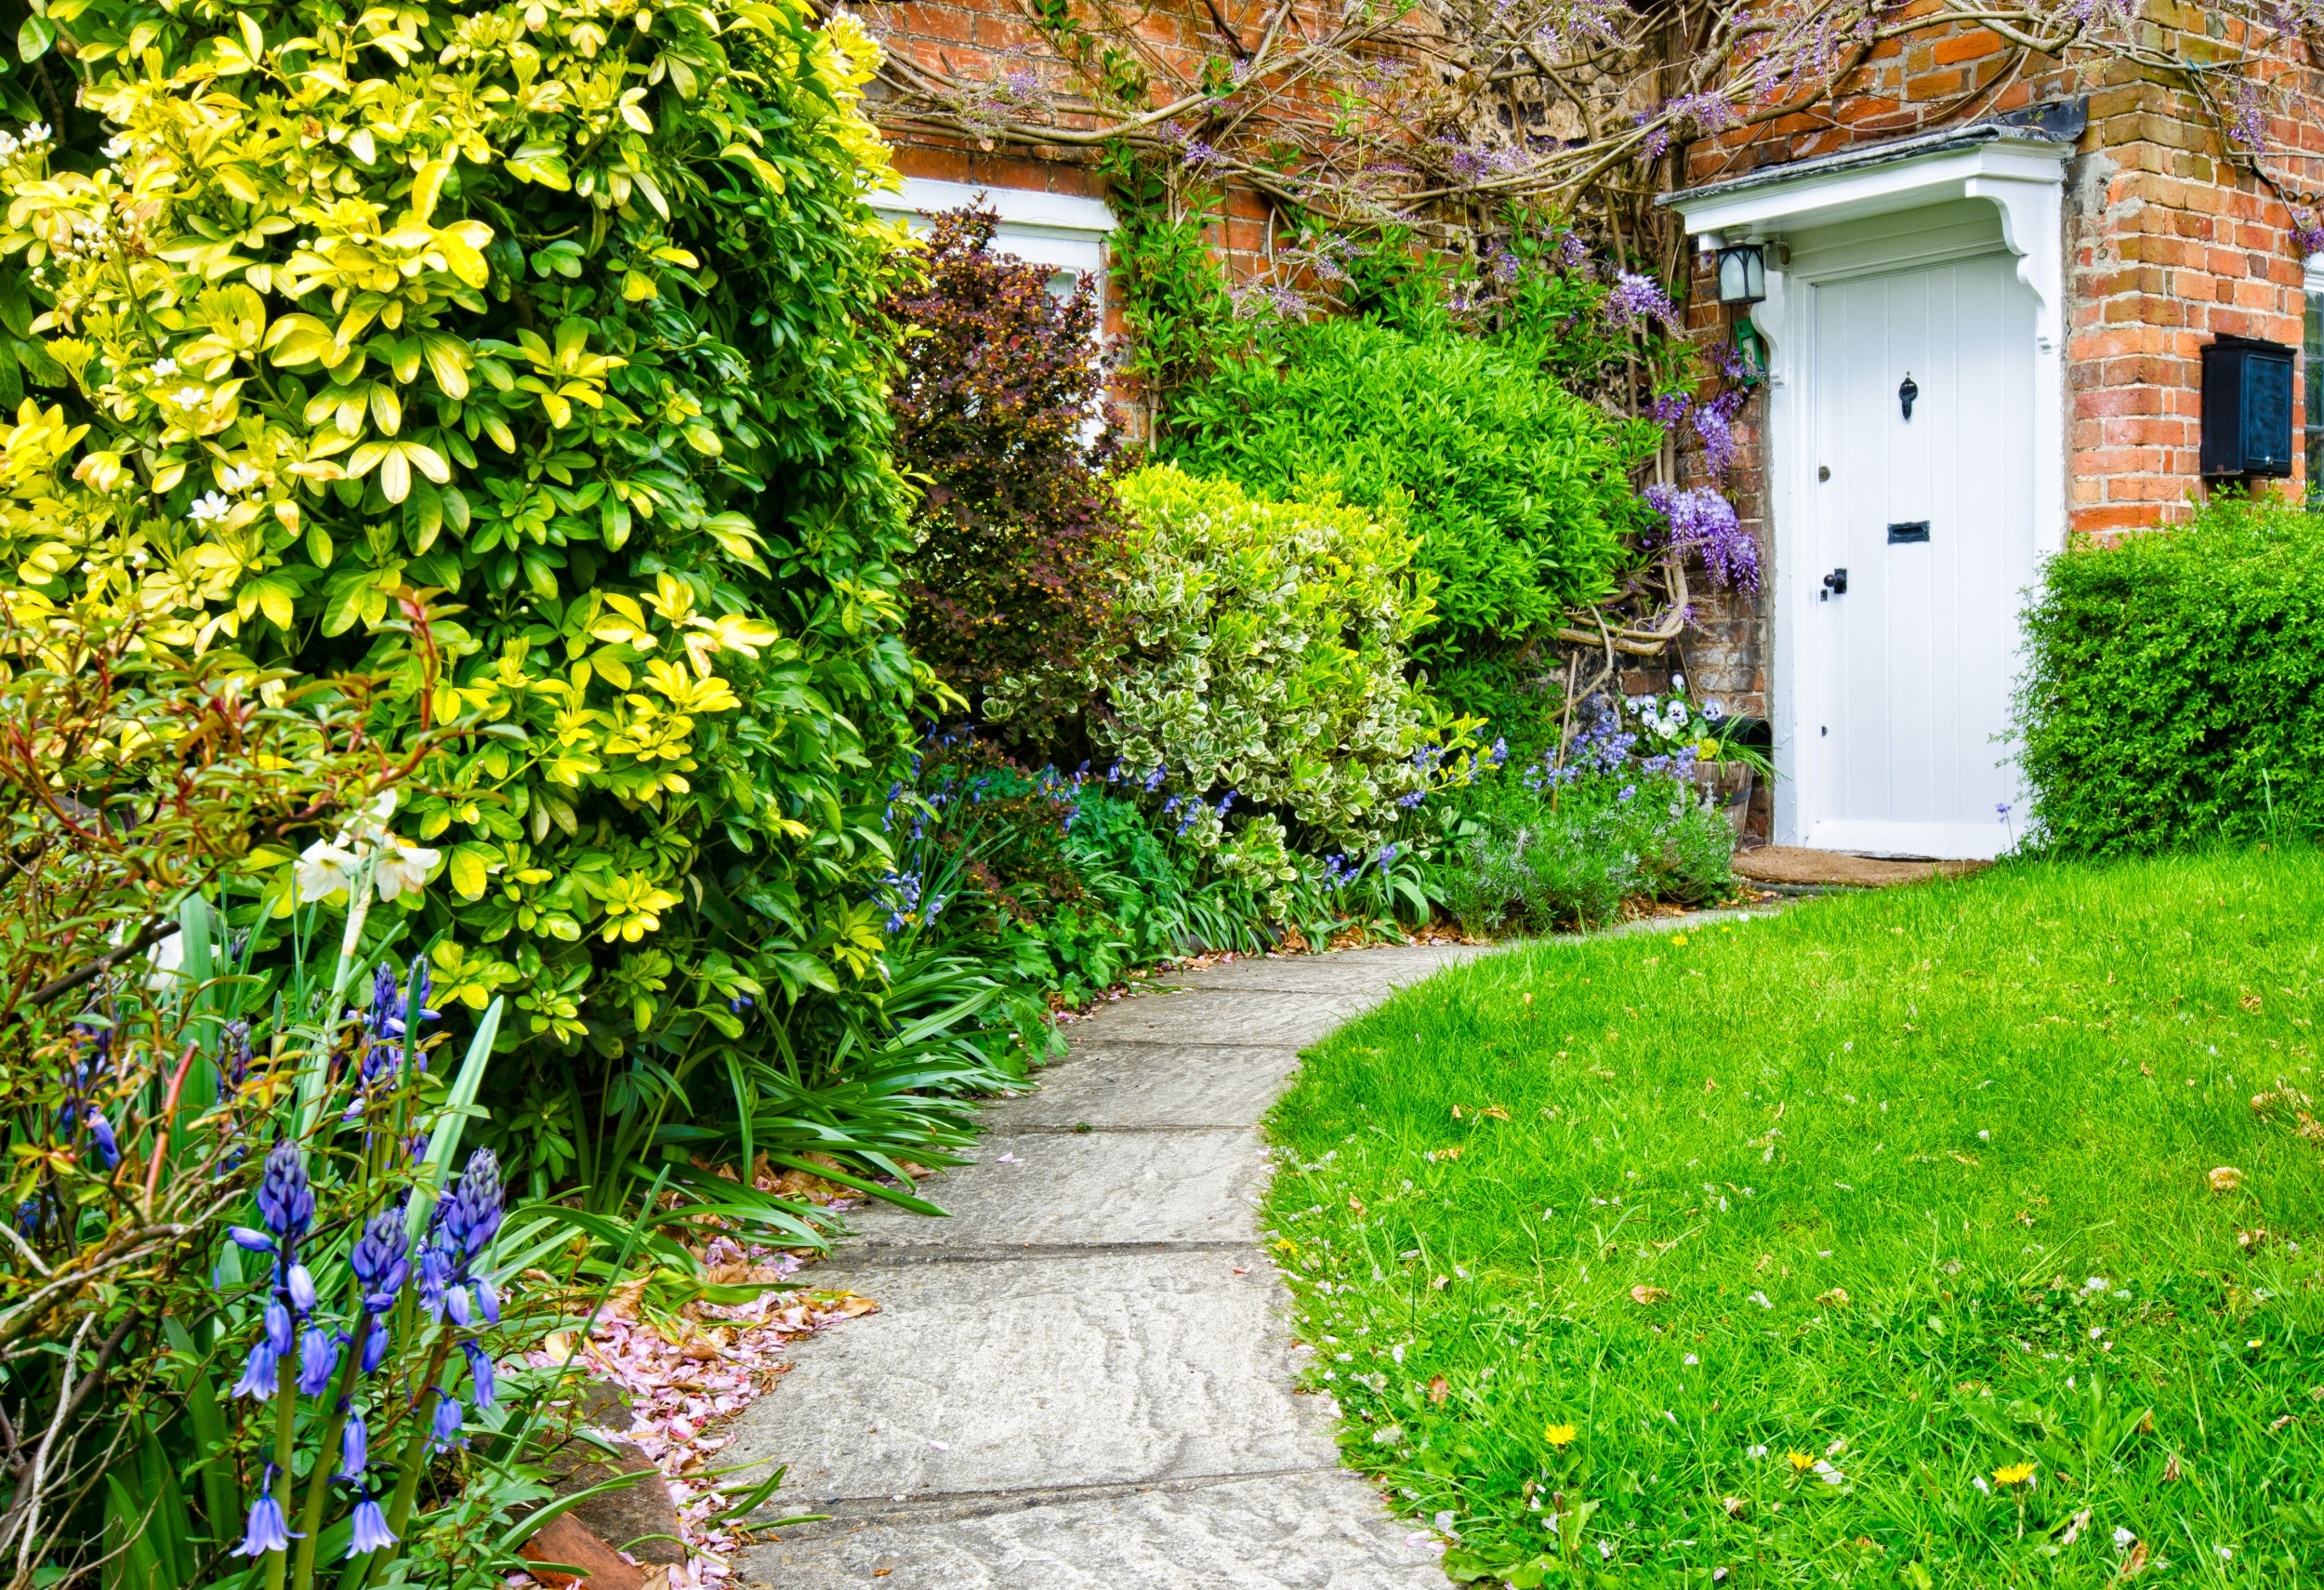 How important is a garden to potential buyers and tenants?